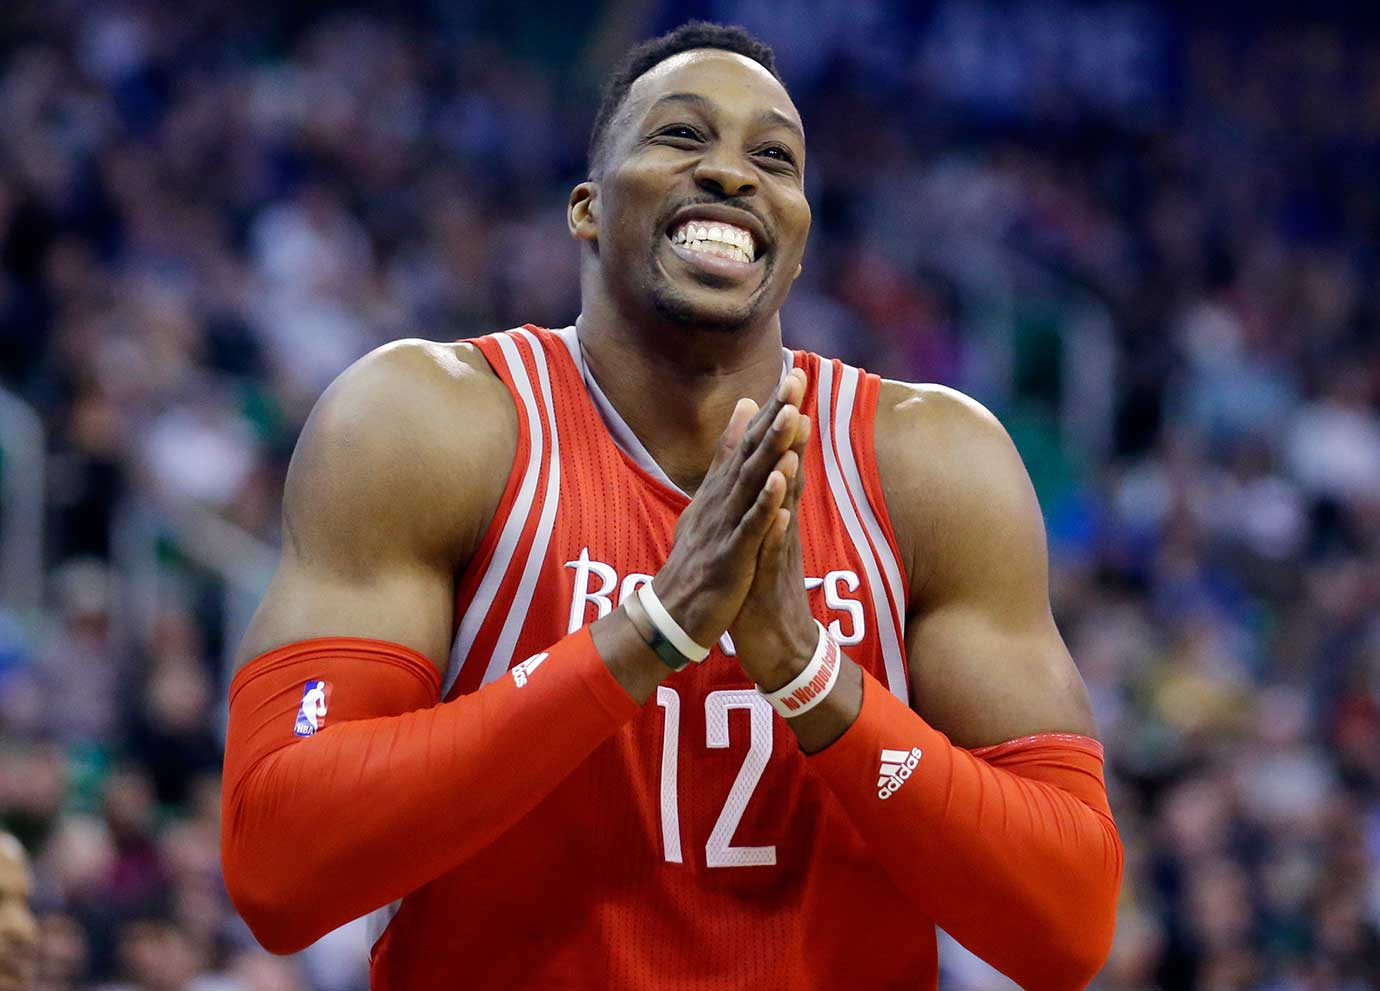 Houston center Dwight Howard during a game at Utah. The Jazz wiped the smile off his face with a 117-114 overtime win.